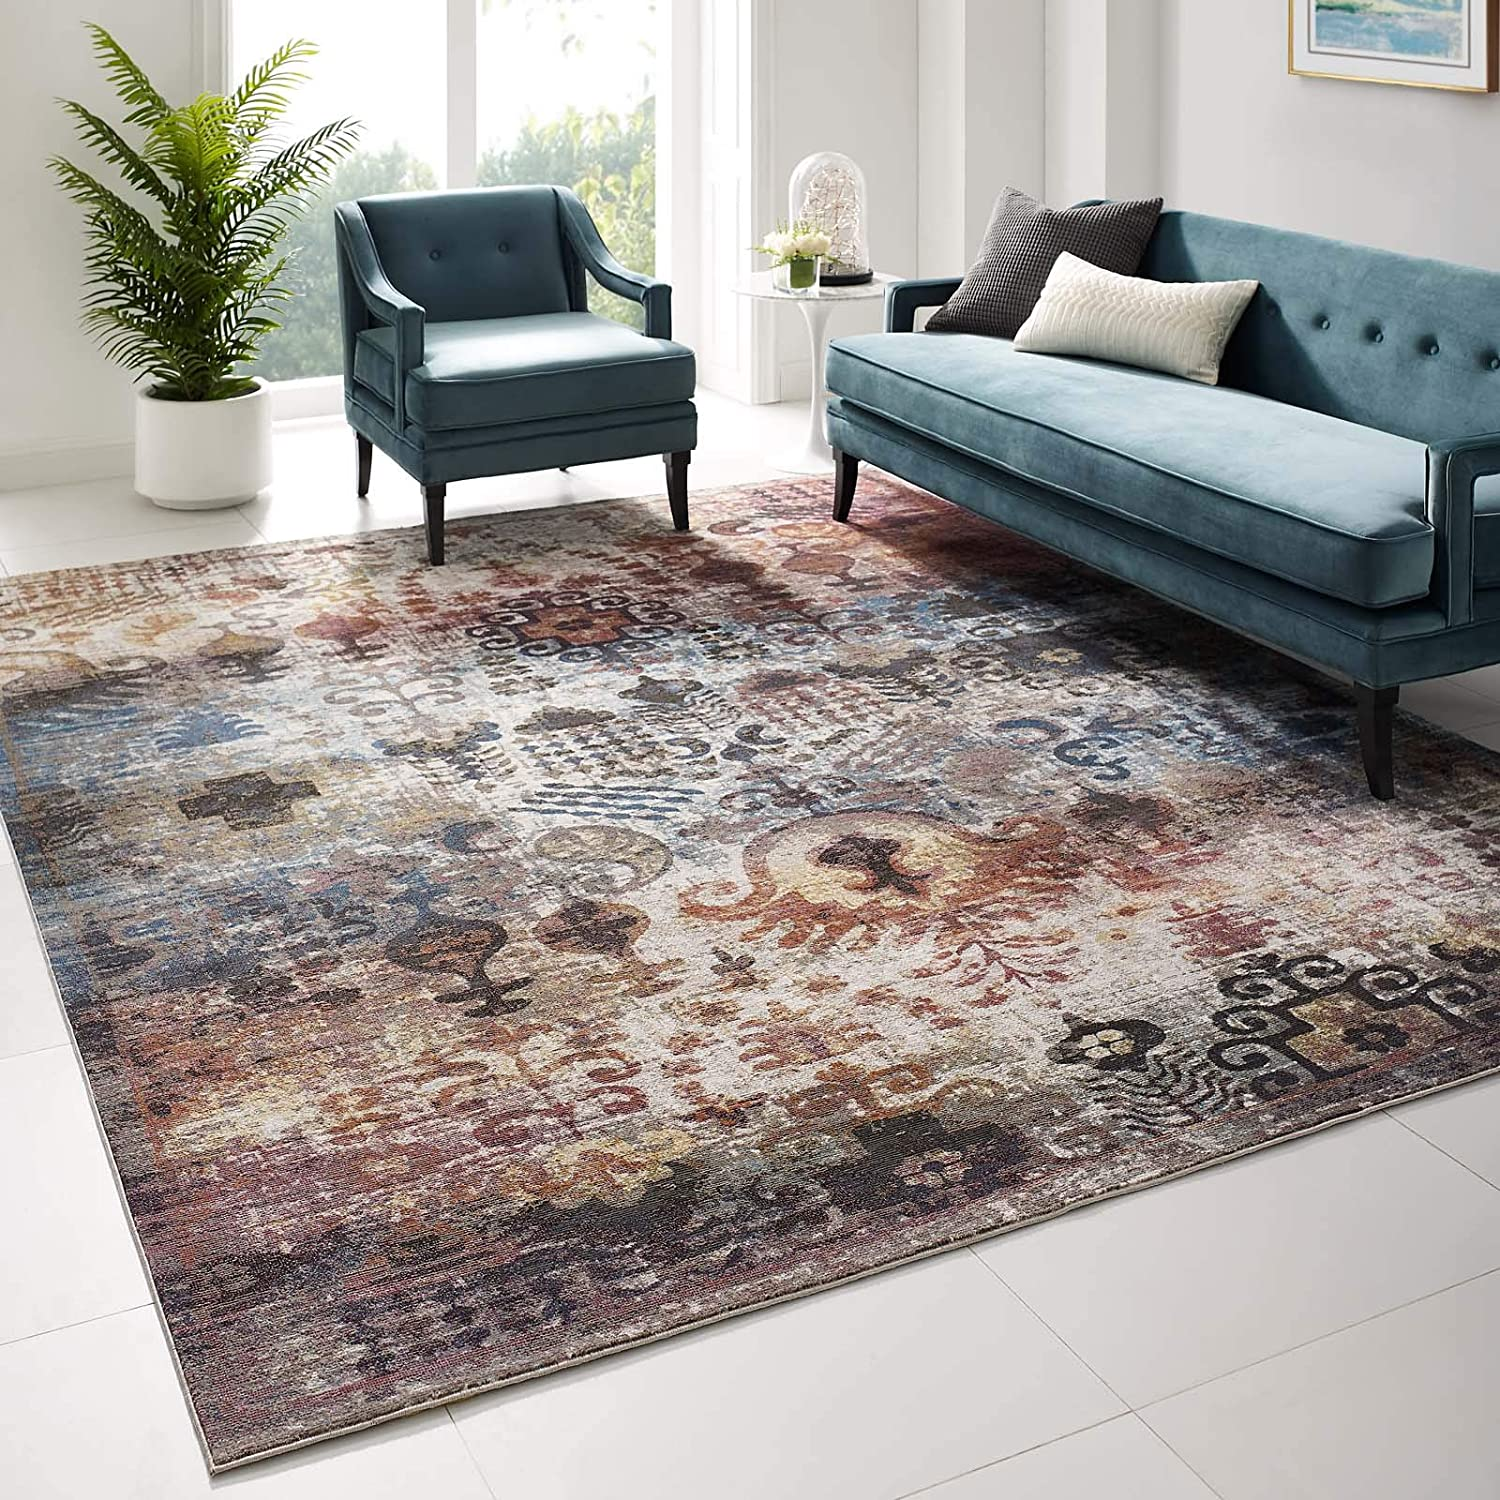 Modway Success Tahira Transitional Distressed Vintage Floral Moroccan Trellis 8x10 Area Rug, Multicolored